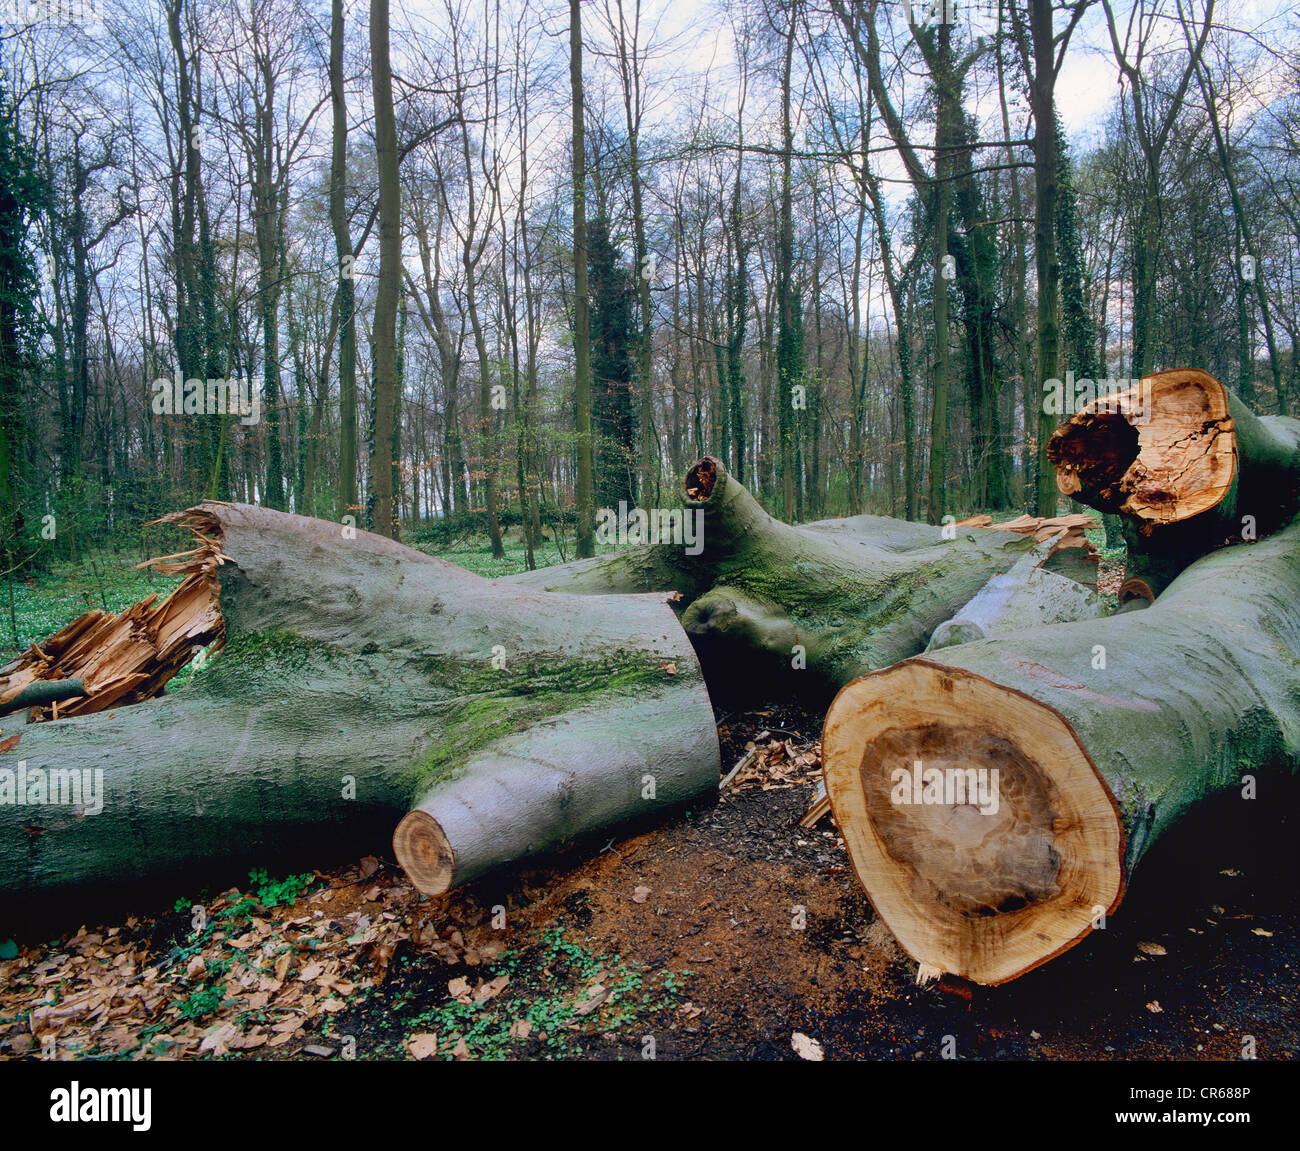 Wind breakage, cut up trunks of fallen trees, European beech, common beech (Fagus sylvatica) - Stock Image